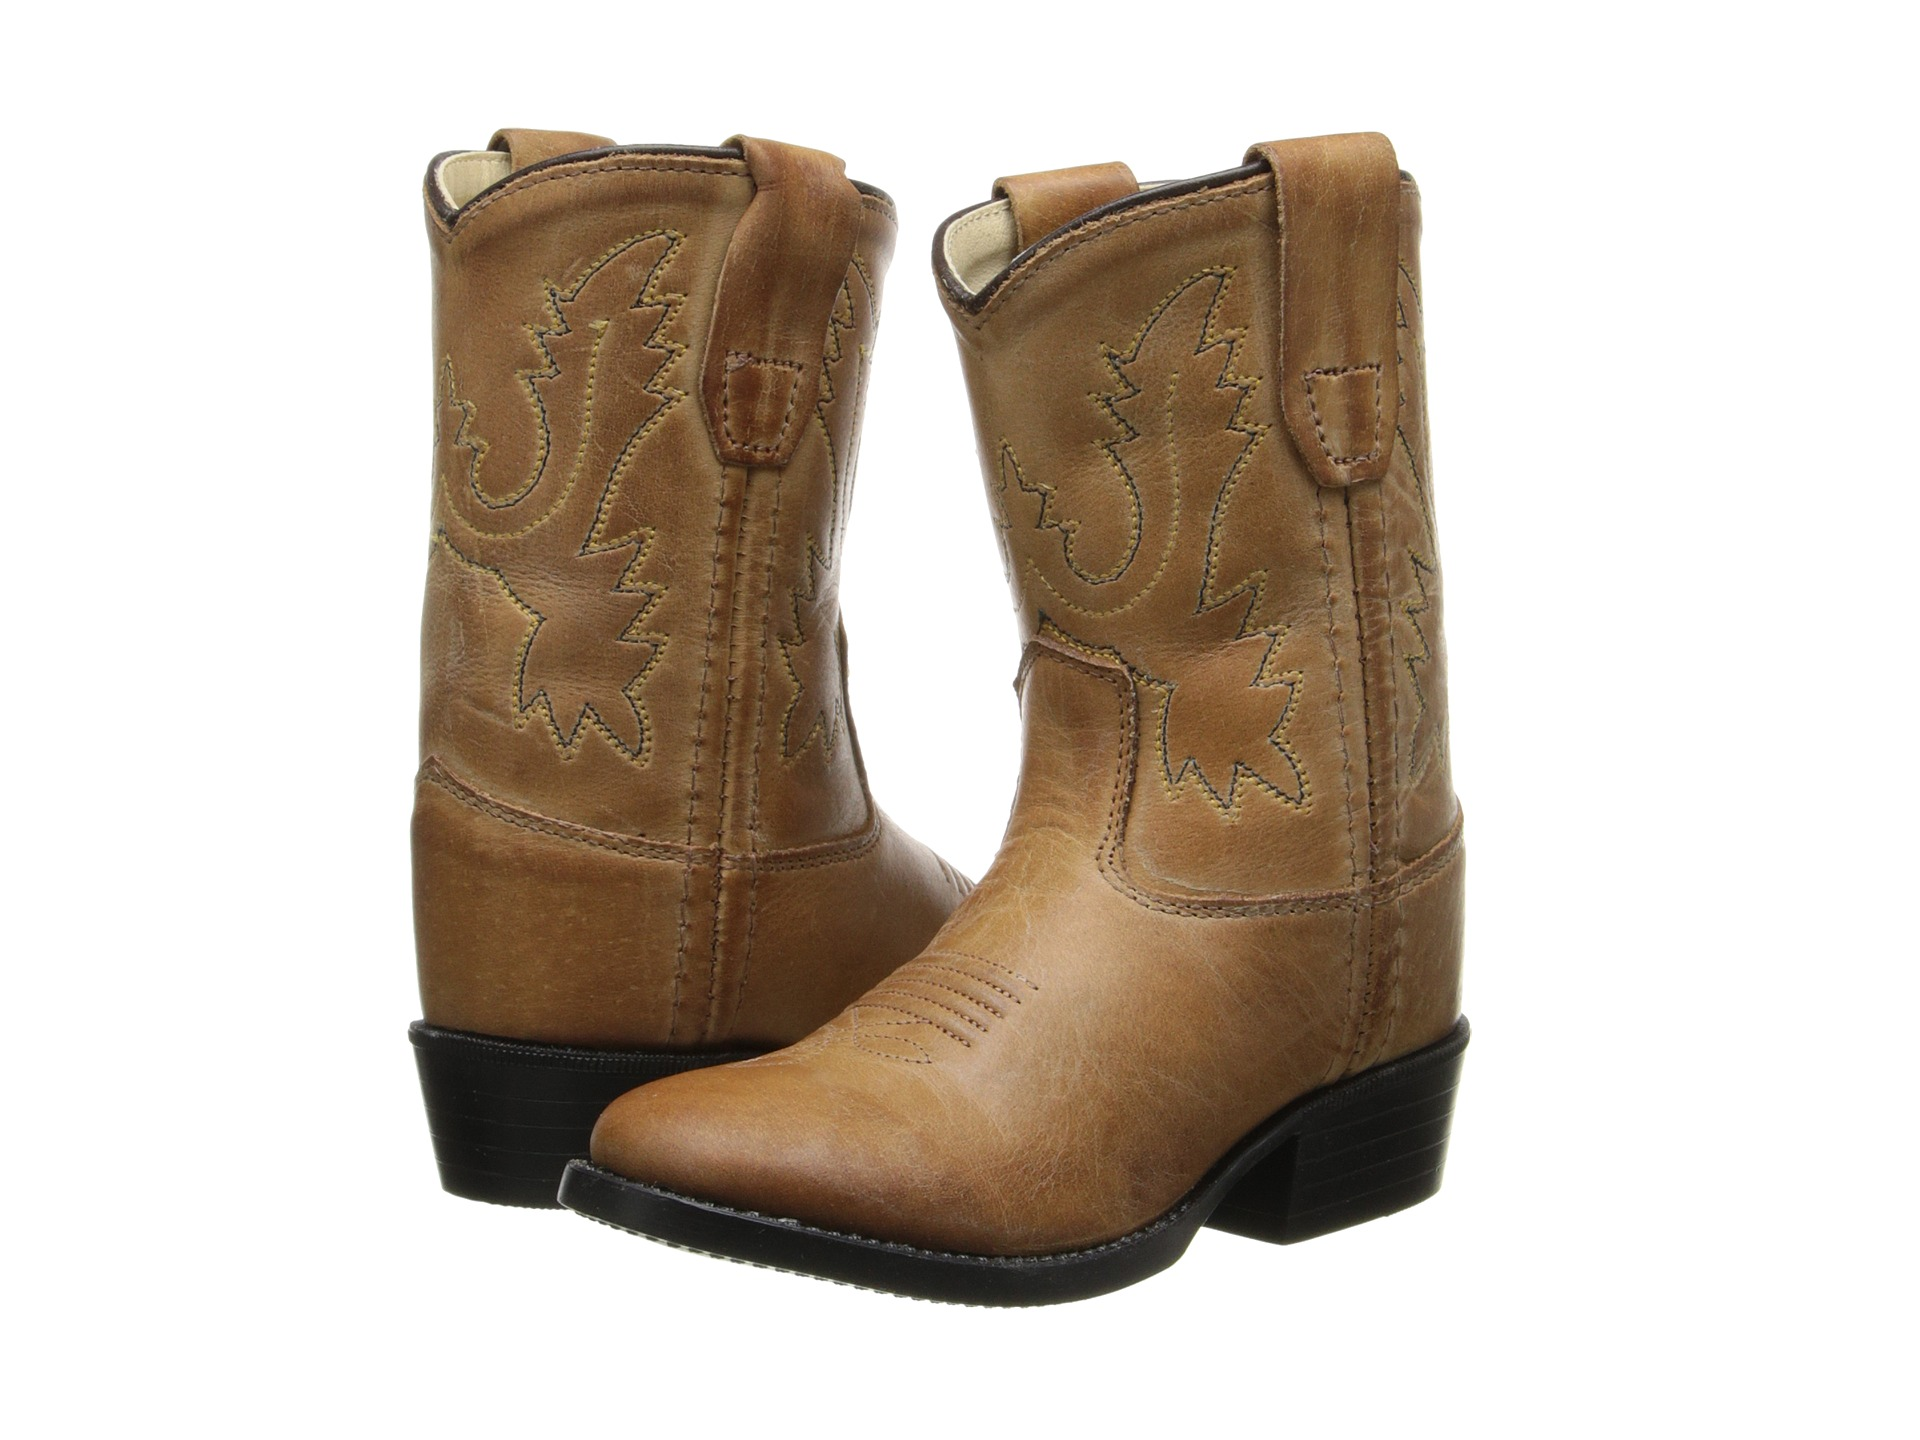 Old West Kids Boots Western Boot (Toddler) at Zappos.com